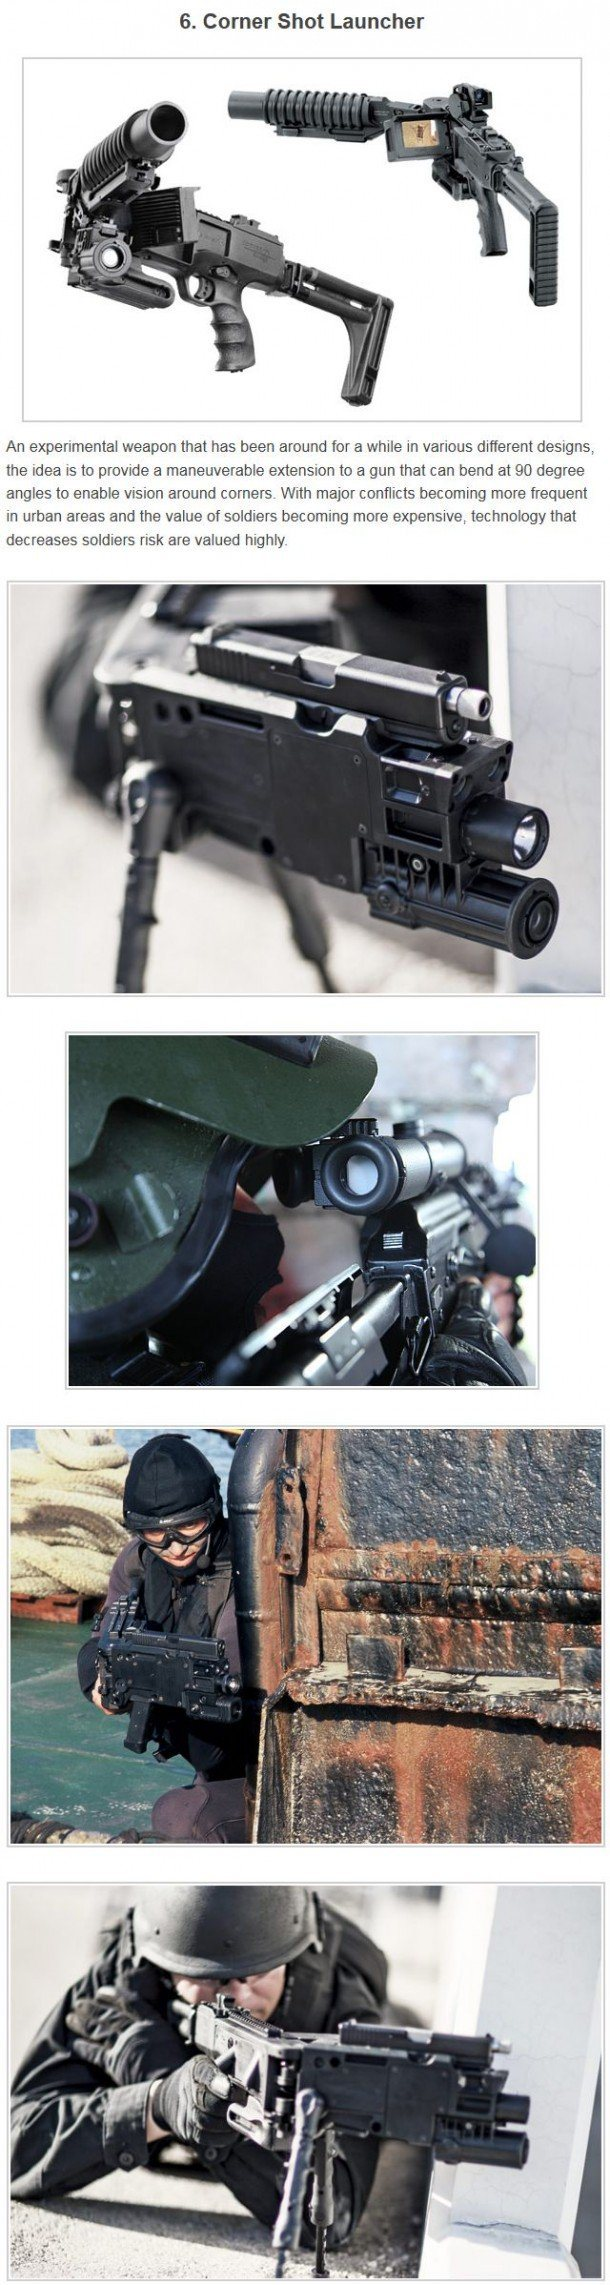 10-Futuristic-and-Deadly-Weapons-6-610x2285